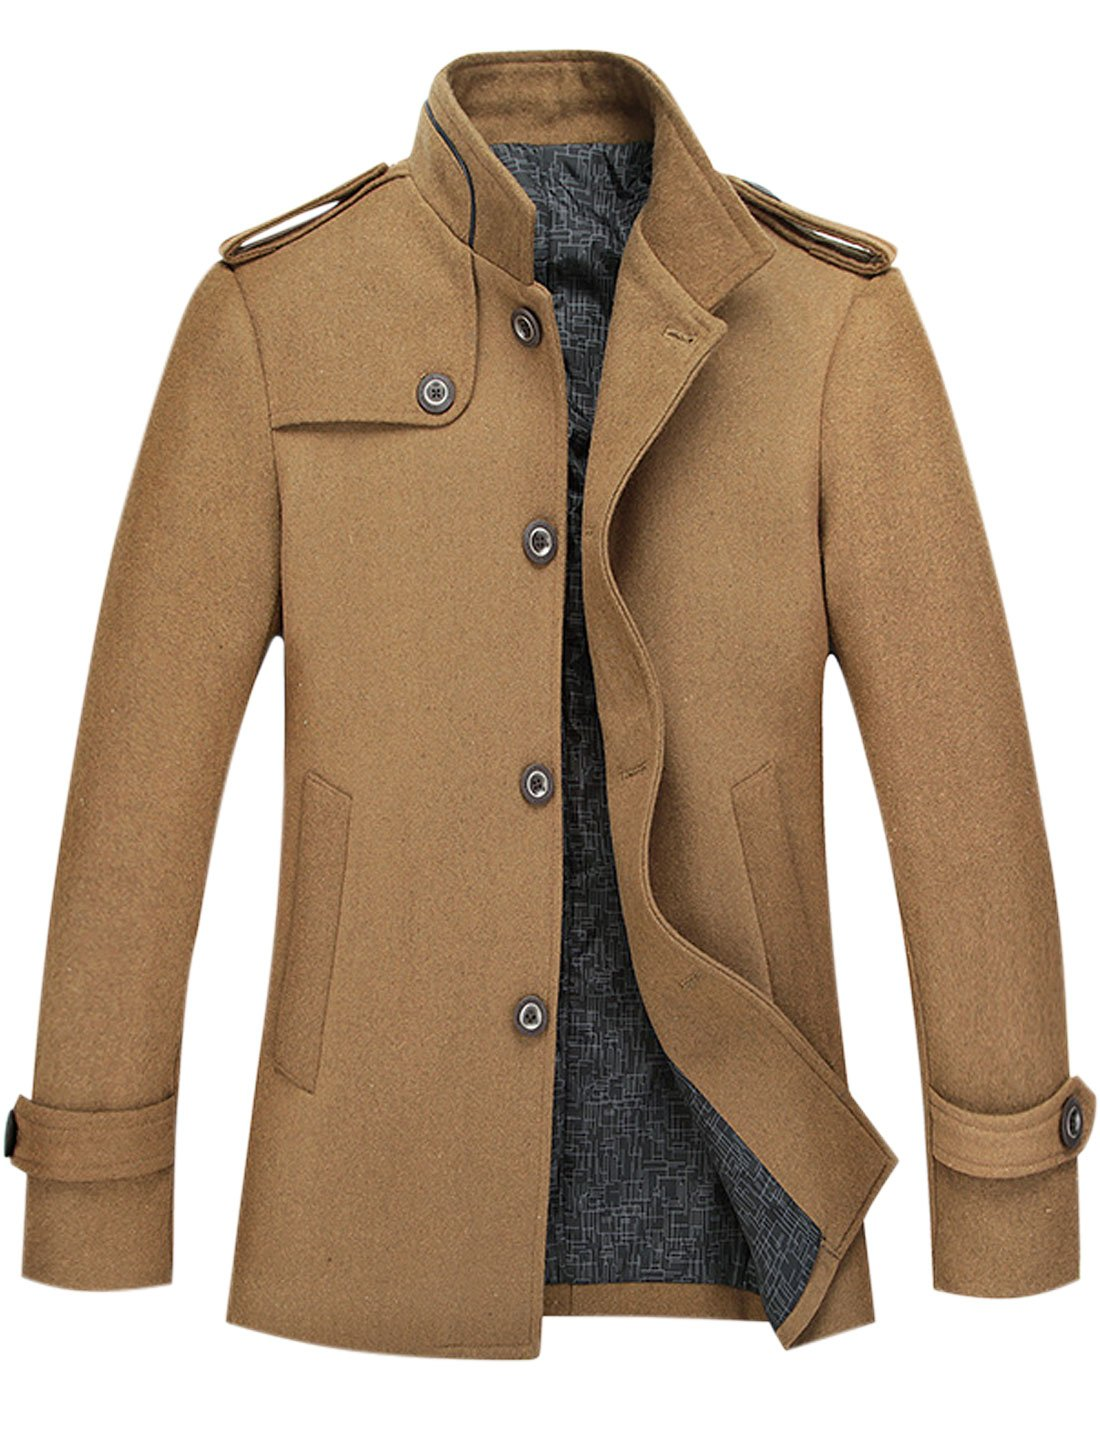 Tanming Men's Stylish Single Breasted Wool Blend Pea Coat Mutiple Colors (X-Small, Khaki) by Tanming